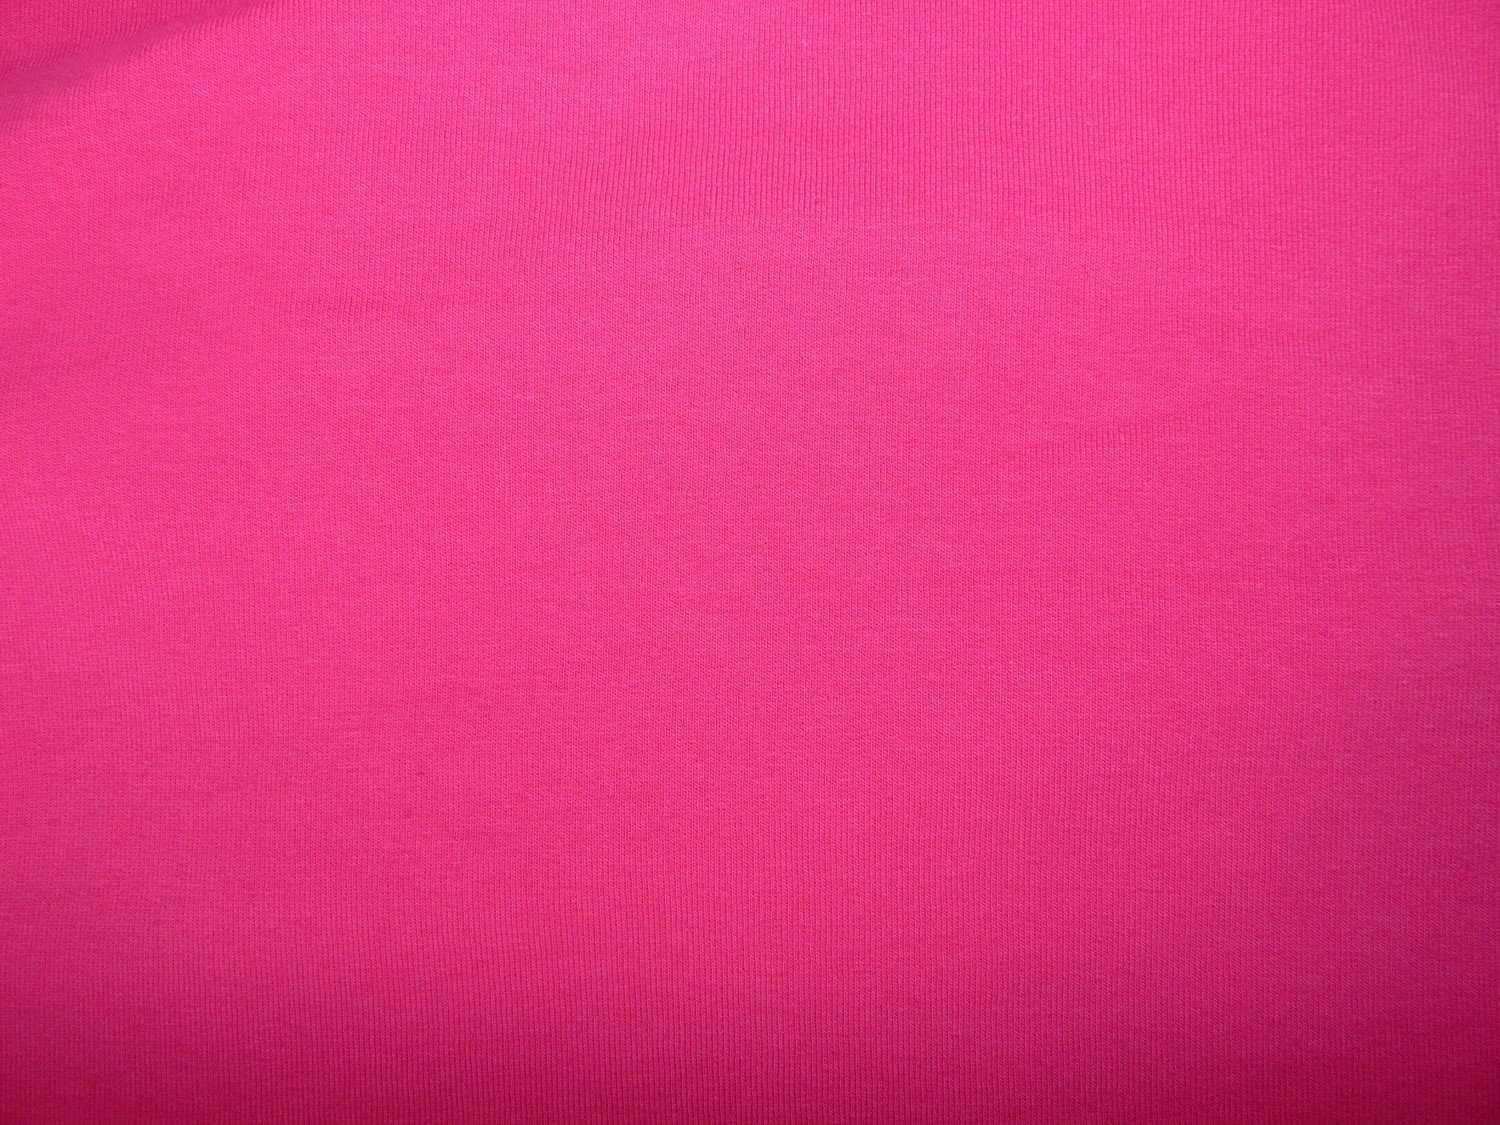 Plain hot pink cotton sweatshirt jersey fabric - Bobbins ...